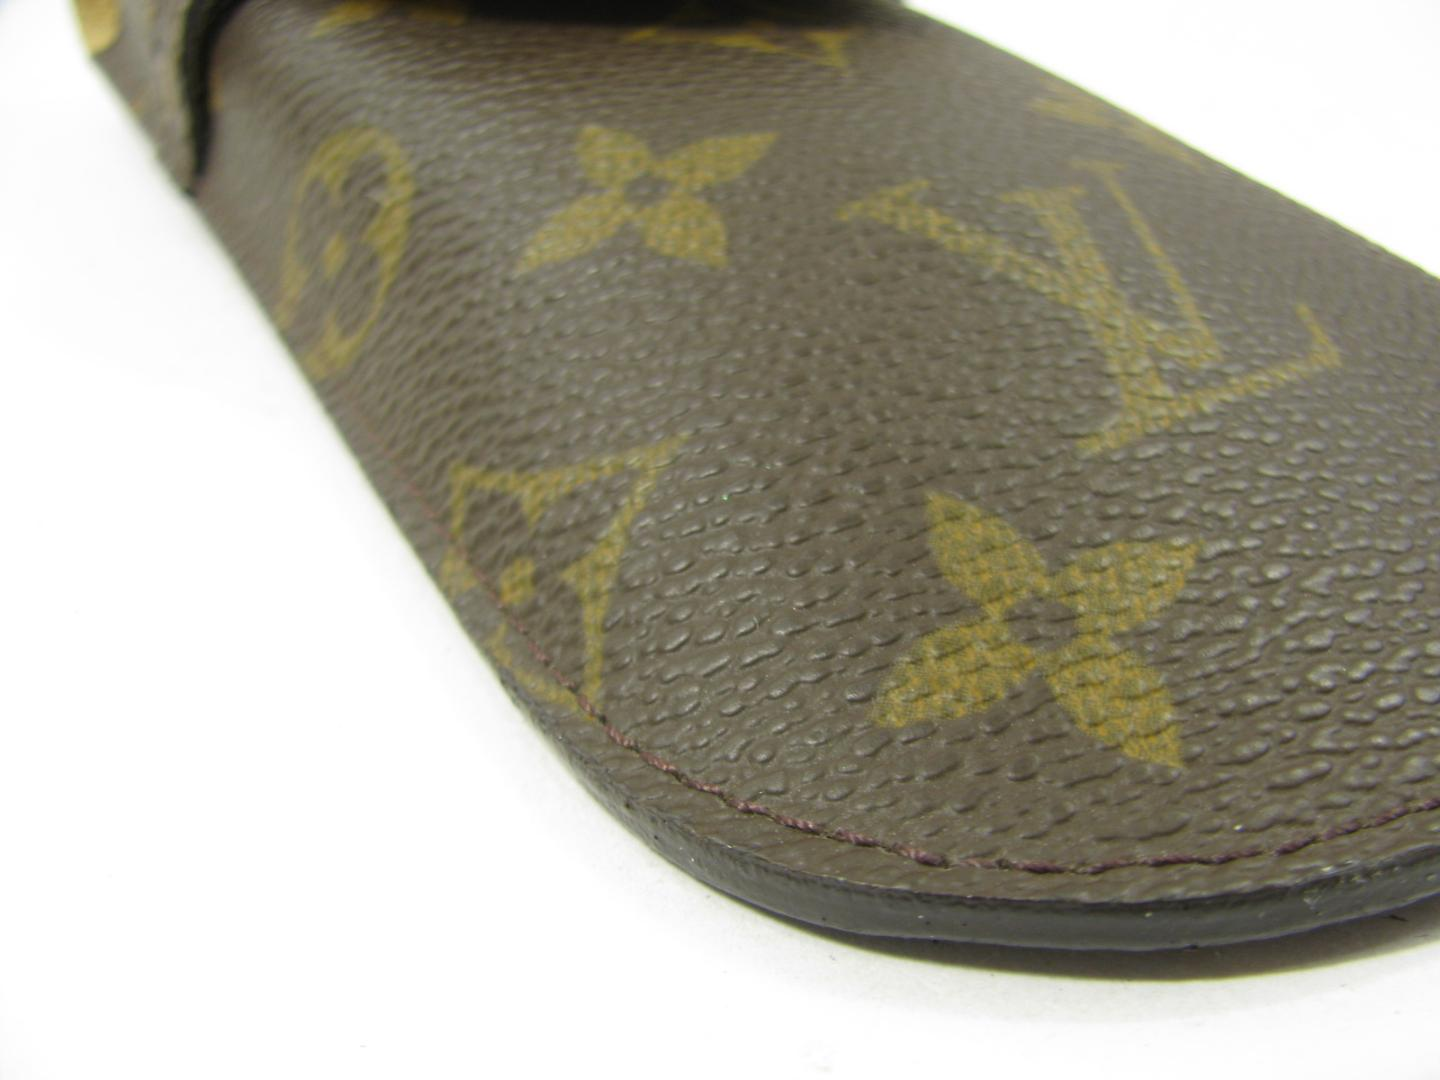 1777f83276f2 ... Authentic LOUIS VUITTON Etui Lunet Glasses Case M62970 Monogram ...